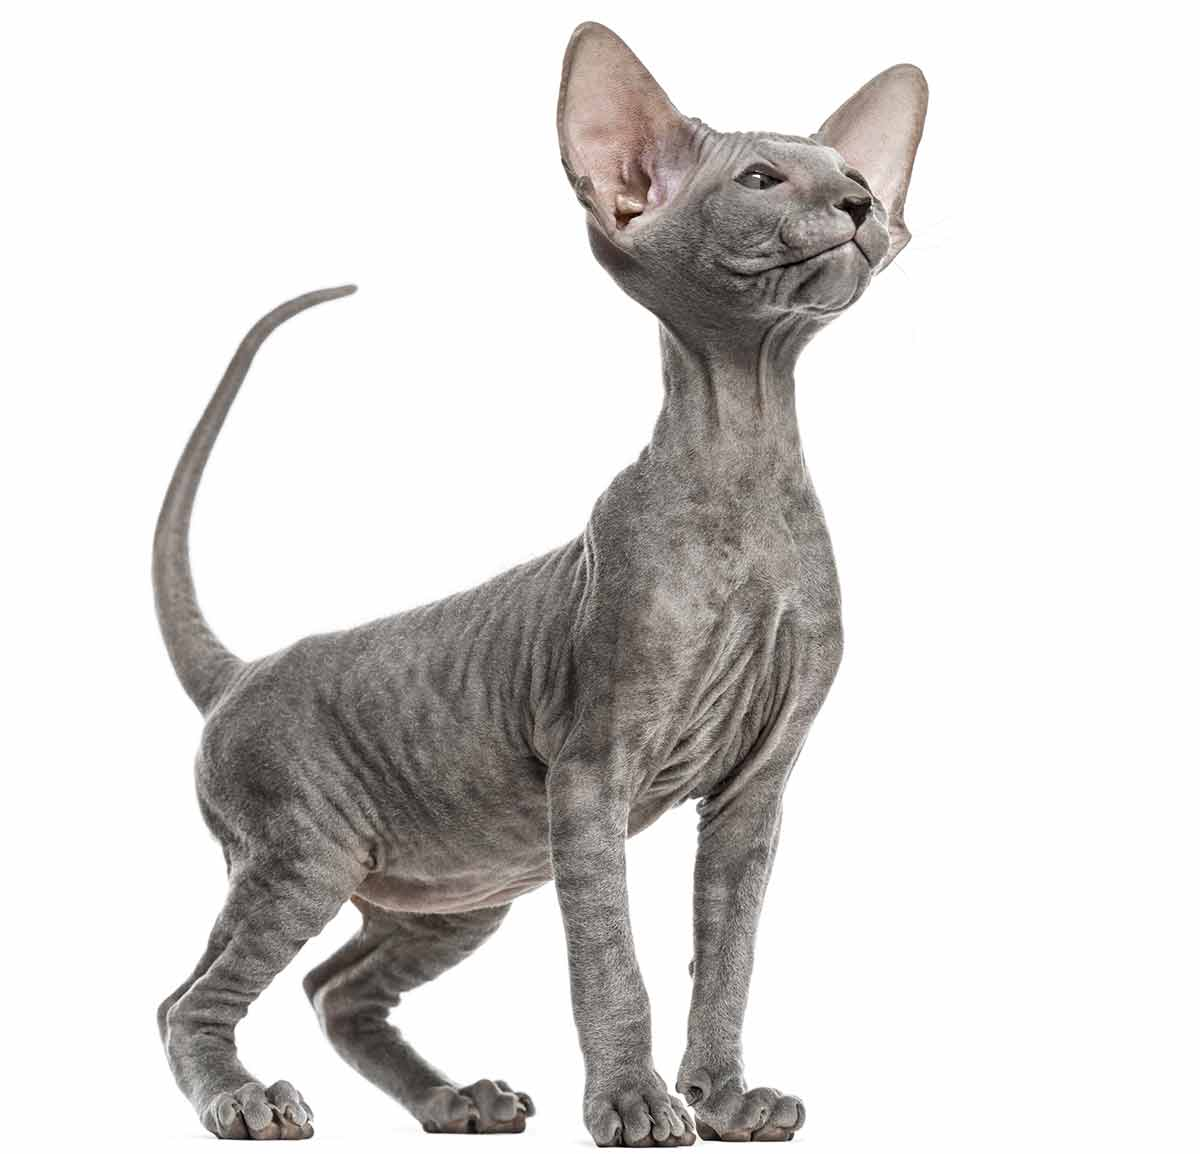 (10) Ten Of The Rarest Cat Breeds In Existence Today 1